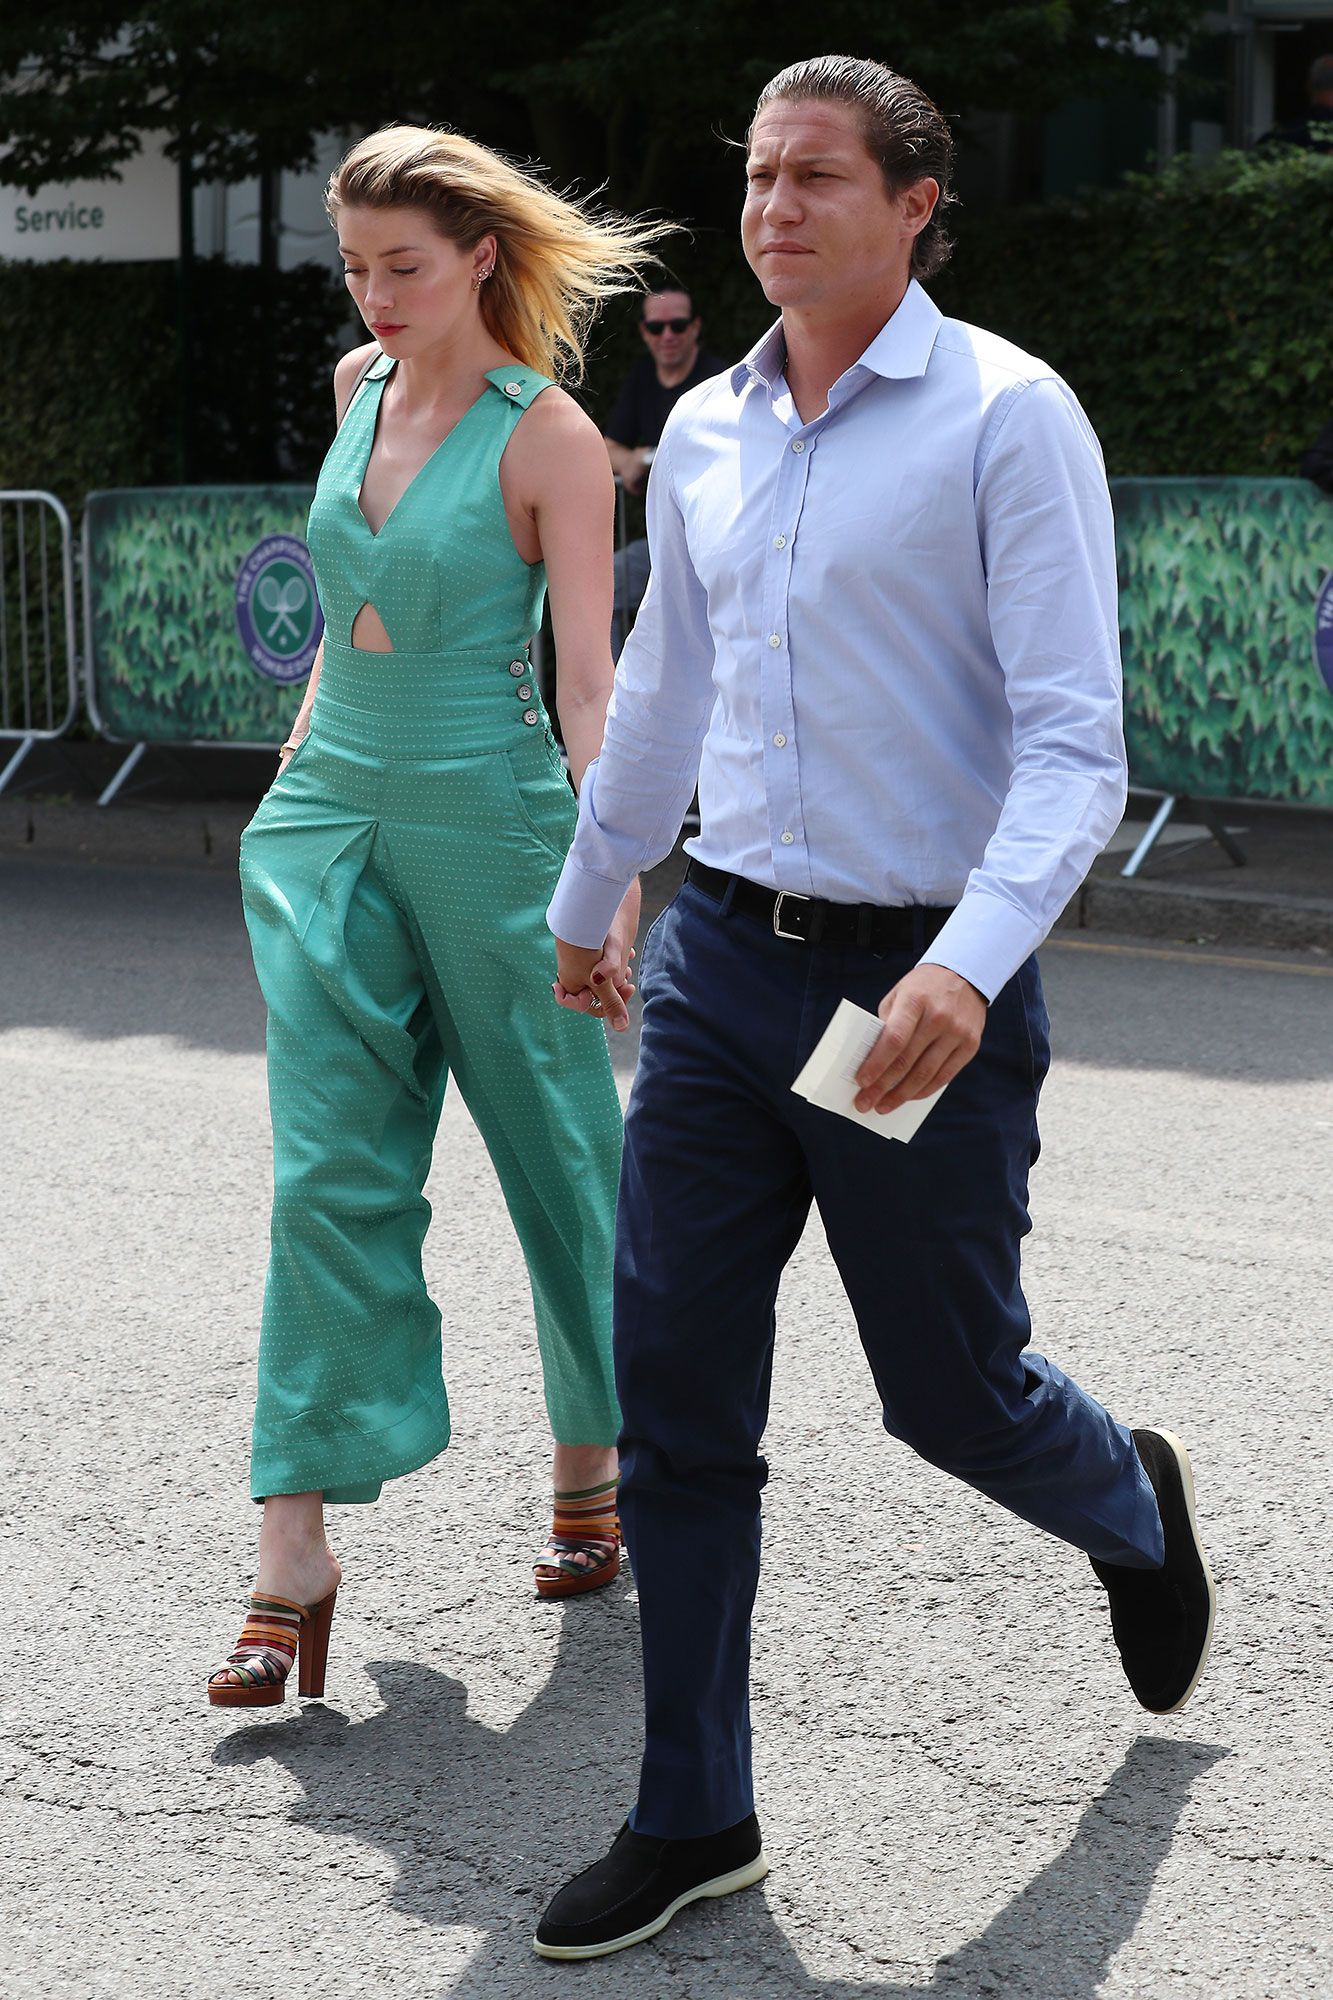 Heating Up! Amber Heard and Vito Schnabel Hold Hands on Wimbledon Date